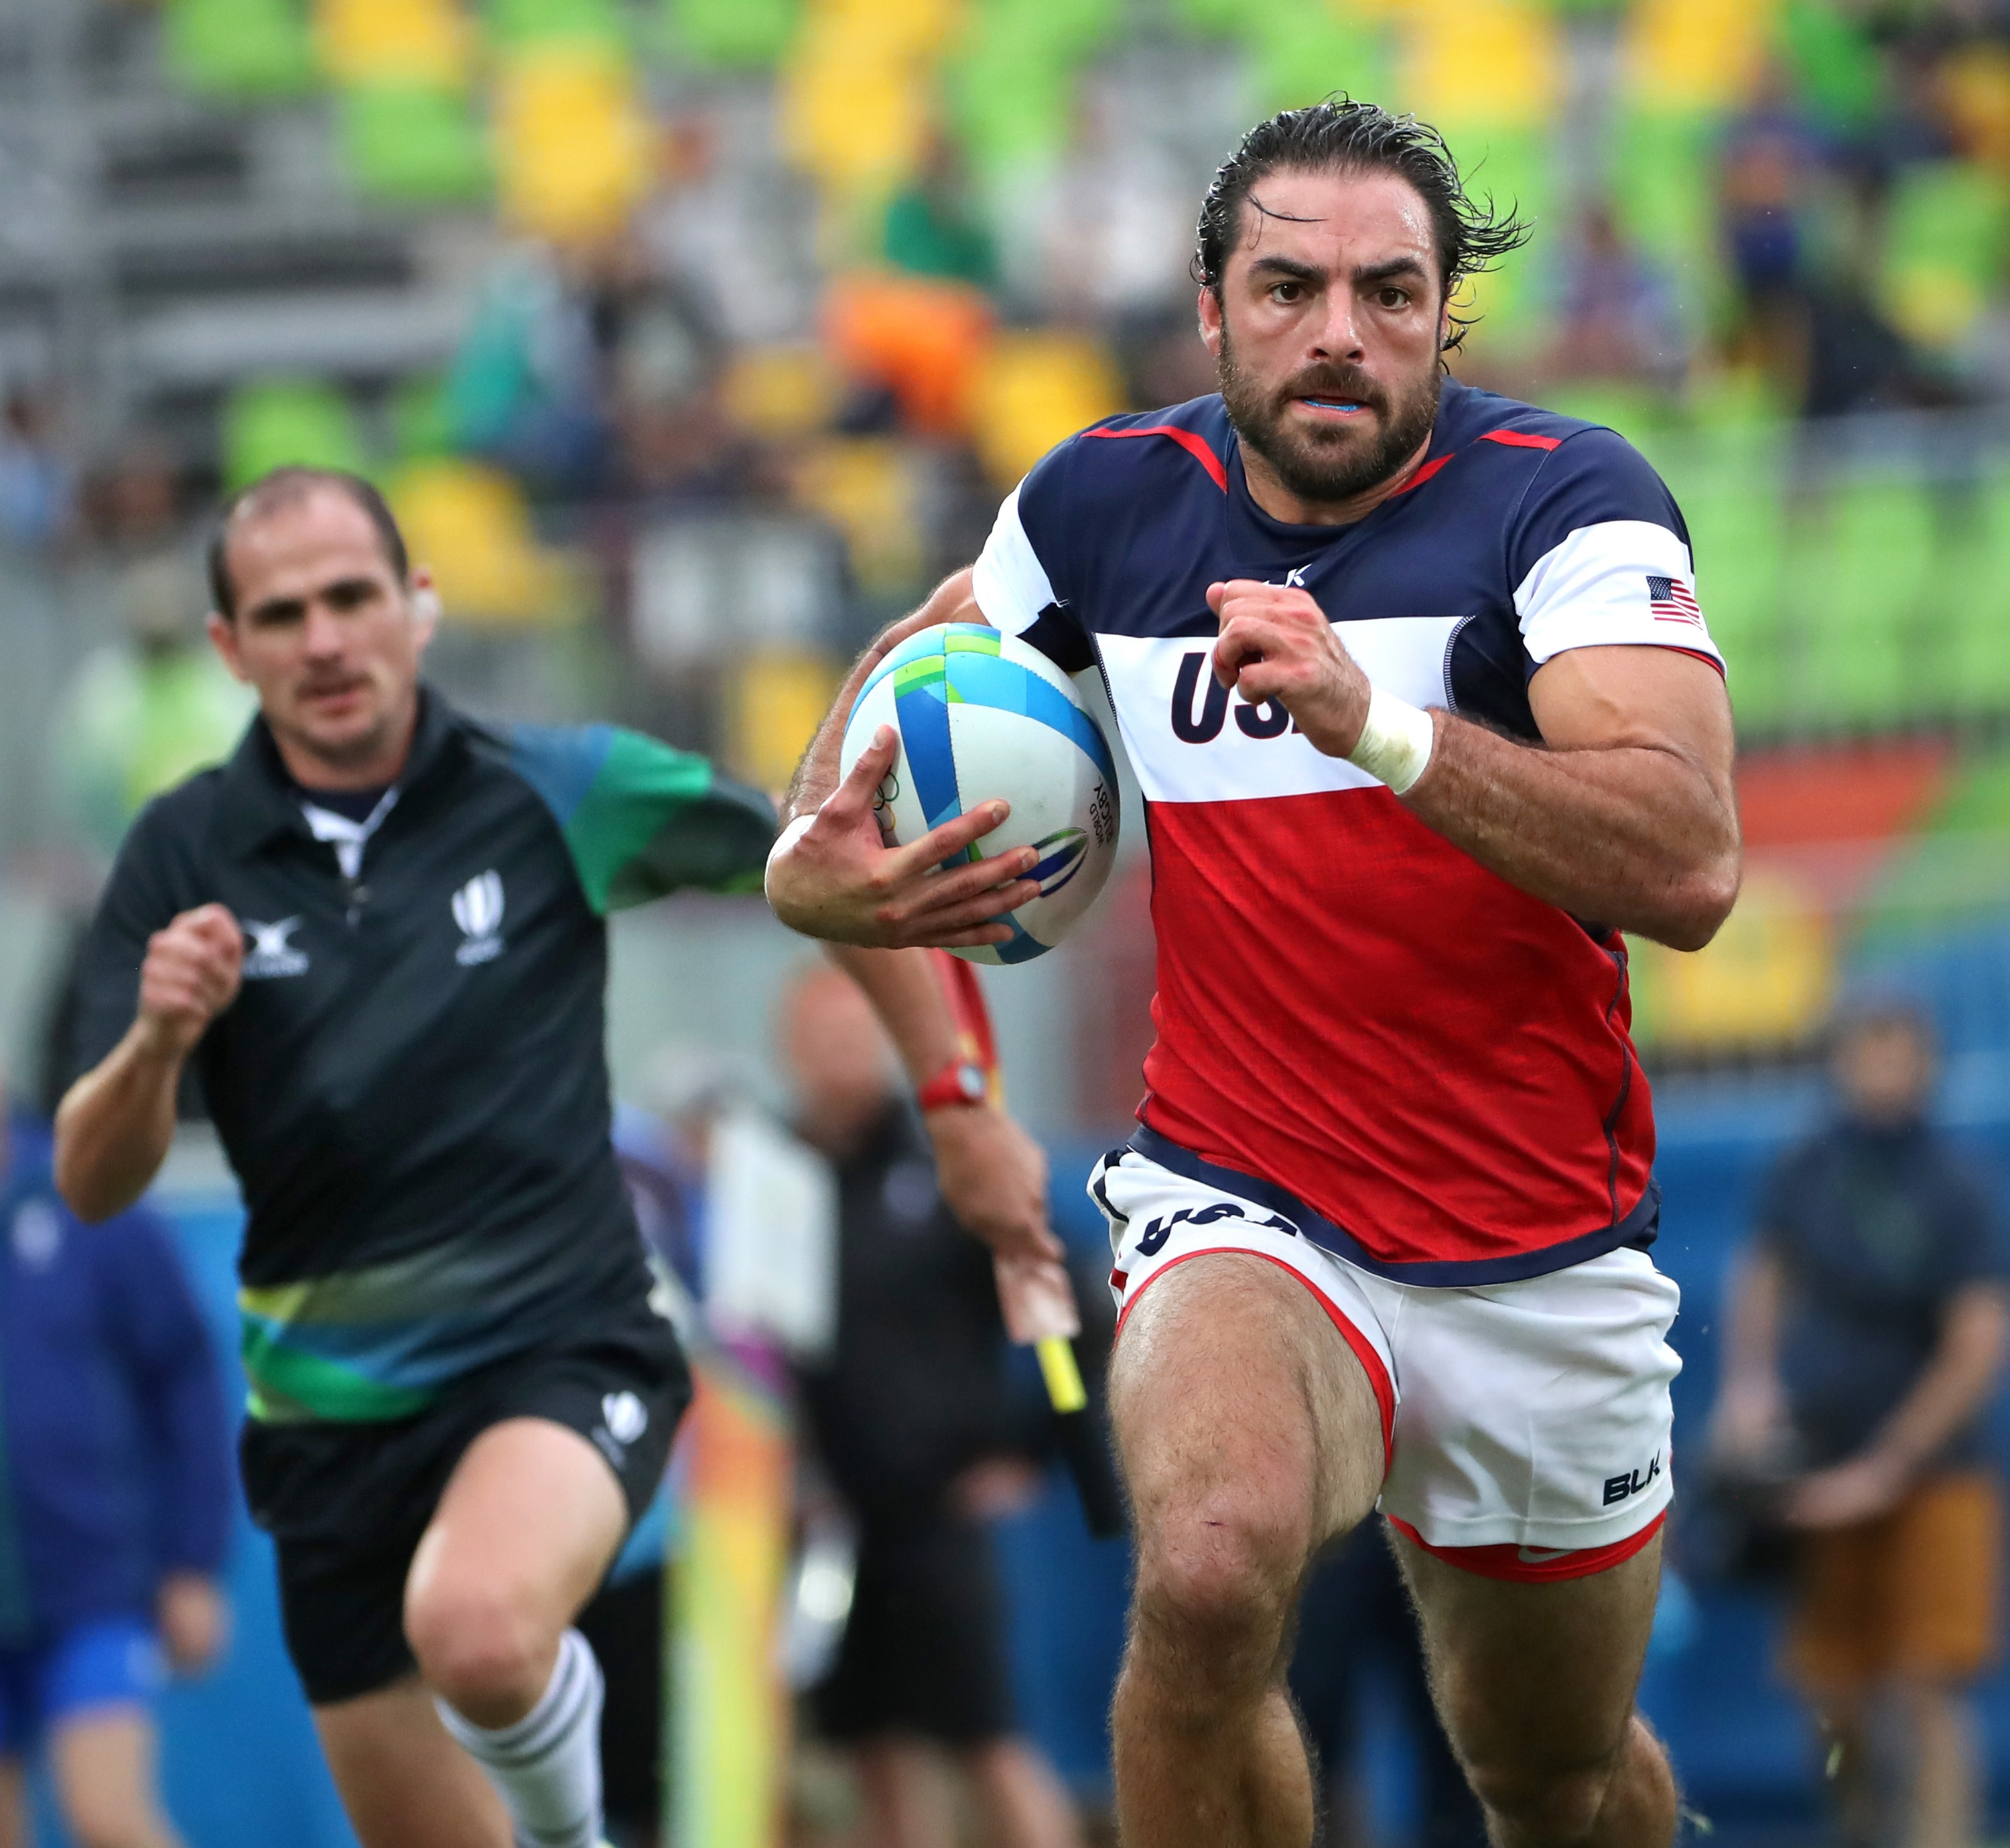 U.S. player Nate Ebner scores a try against Fiji in their rugby match on Wednesday. Rugby is one of the sports benefiting from its worldwide exposure at the Rio Summer Games. (Tribune News Service)